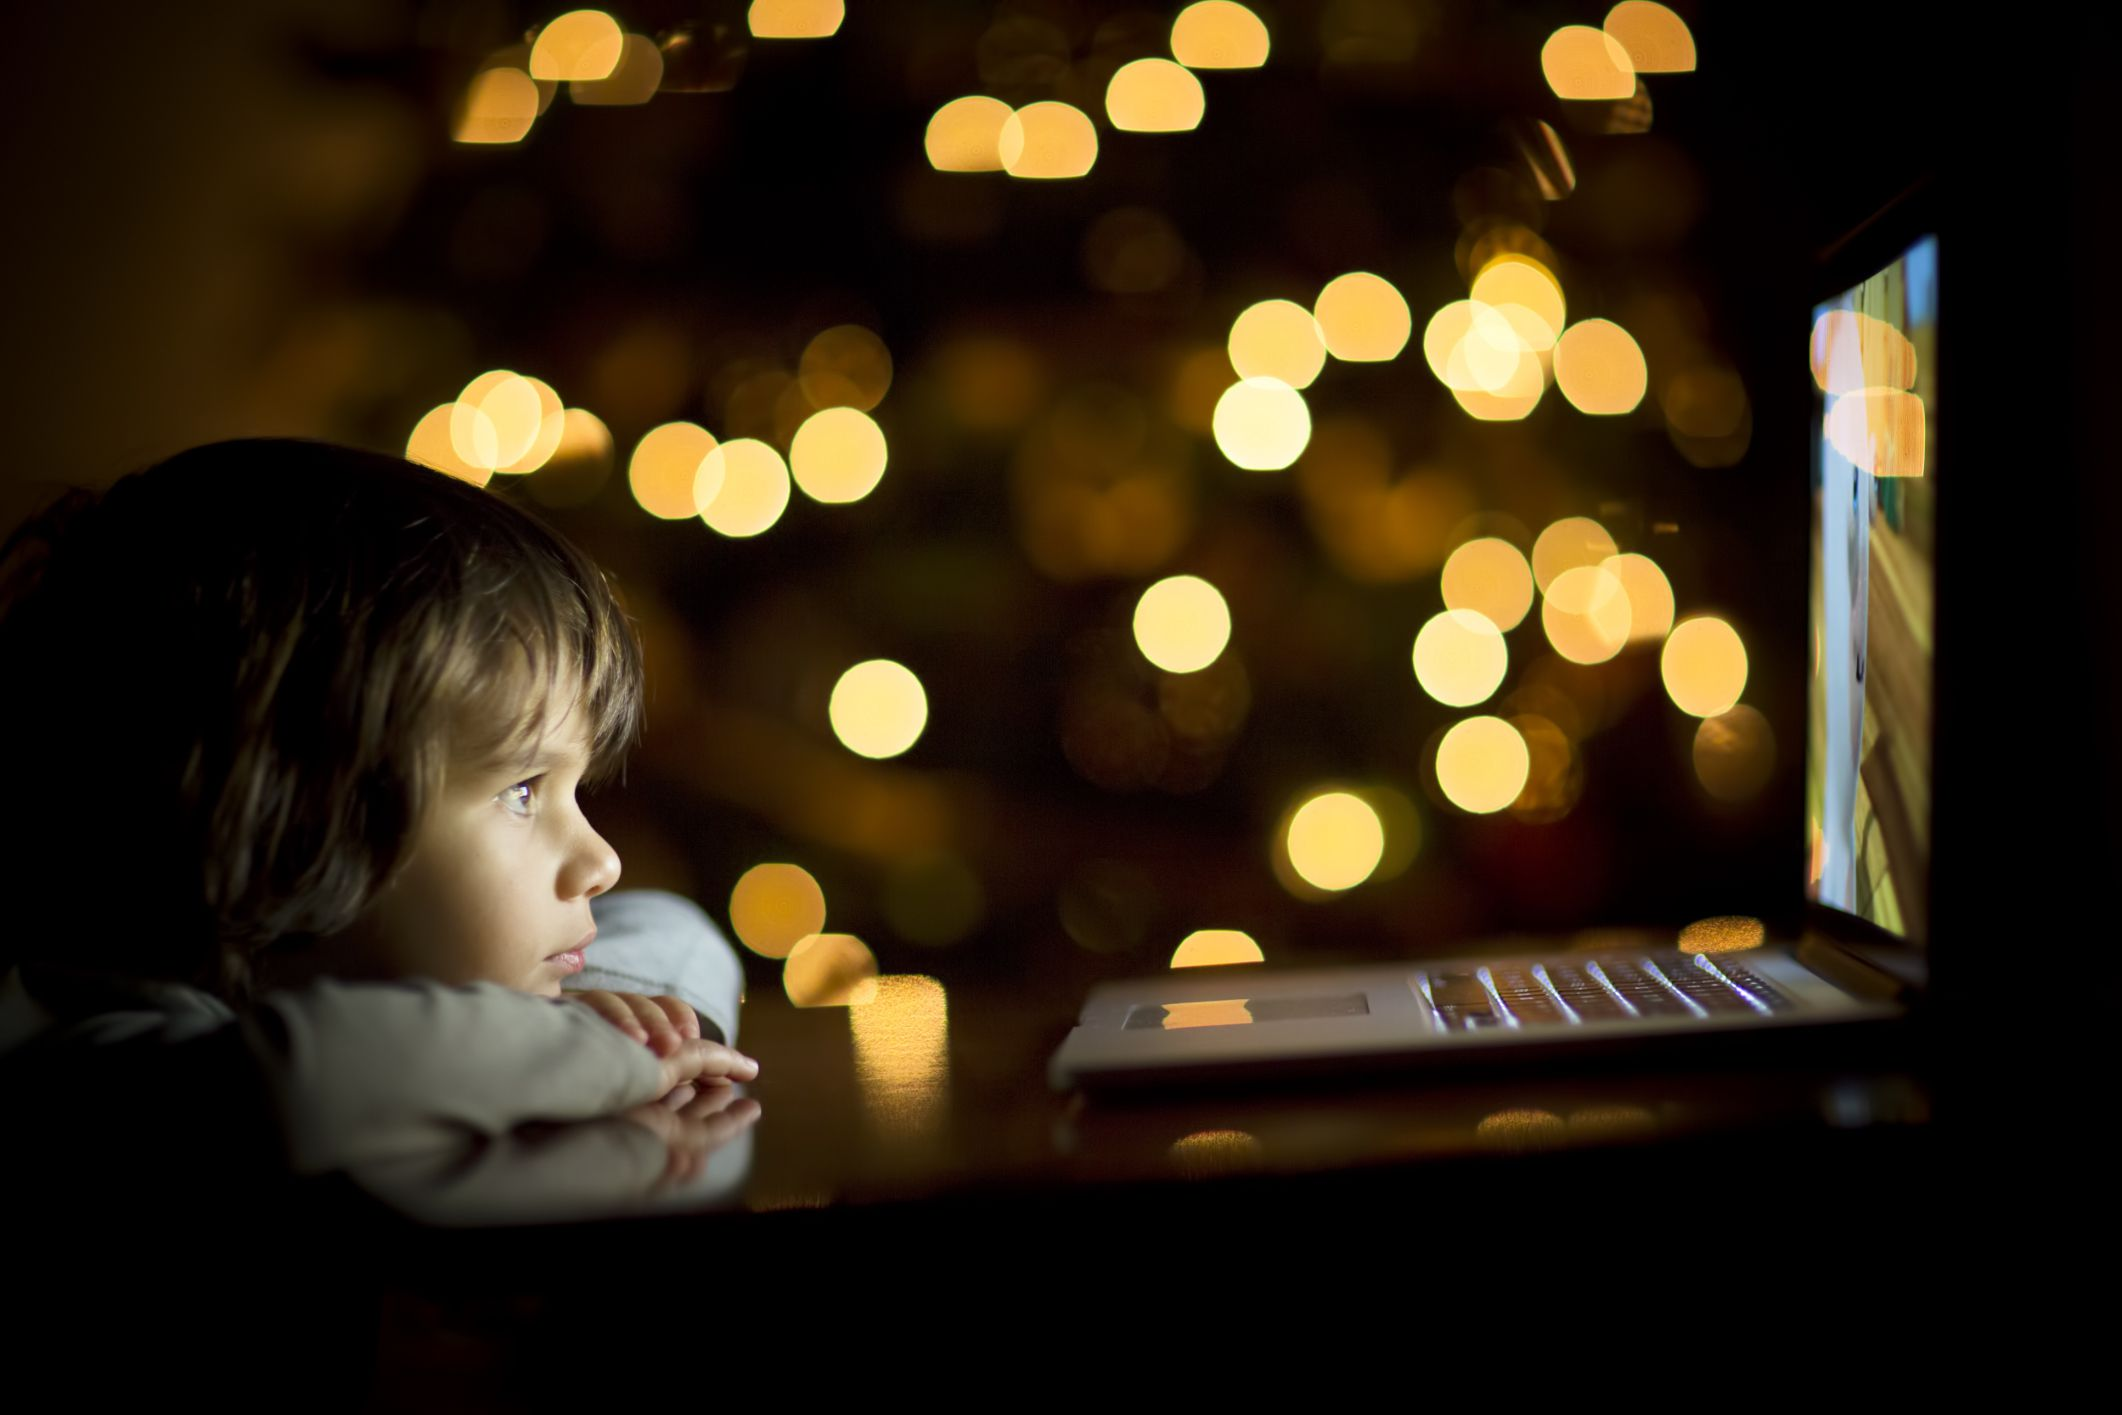 50 YouTube Links to Watch Free Christmas Movies Online